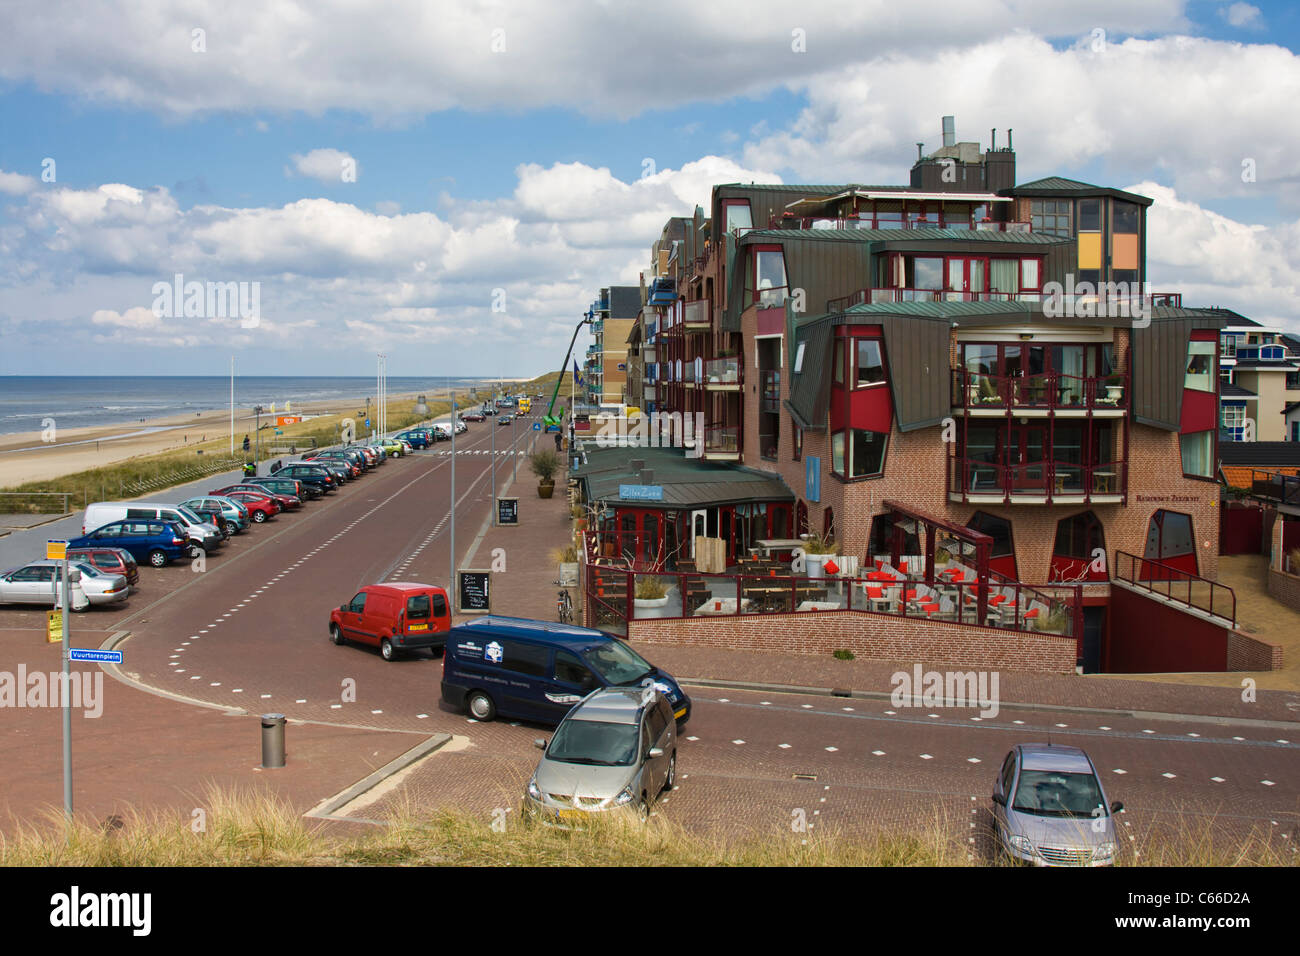 Egmond aan Zee seaside resort and fishing village in North Holland. The Netherlands. - Stock Image